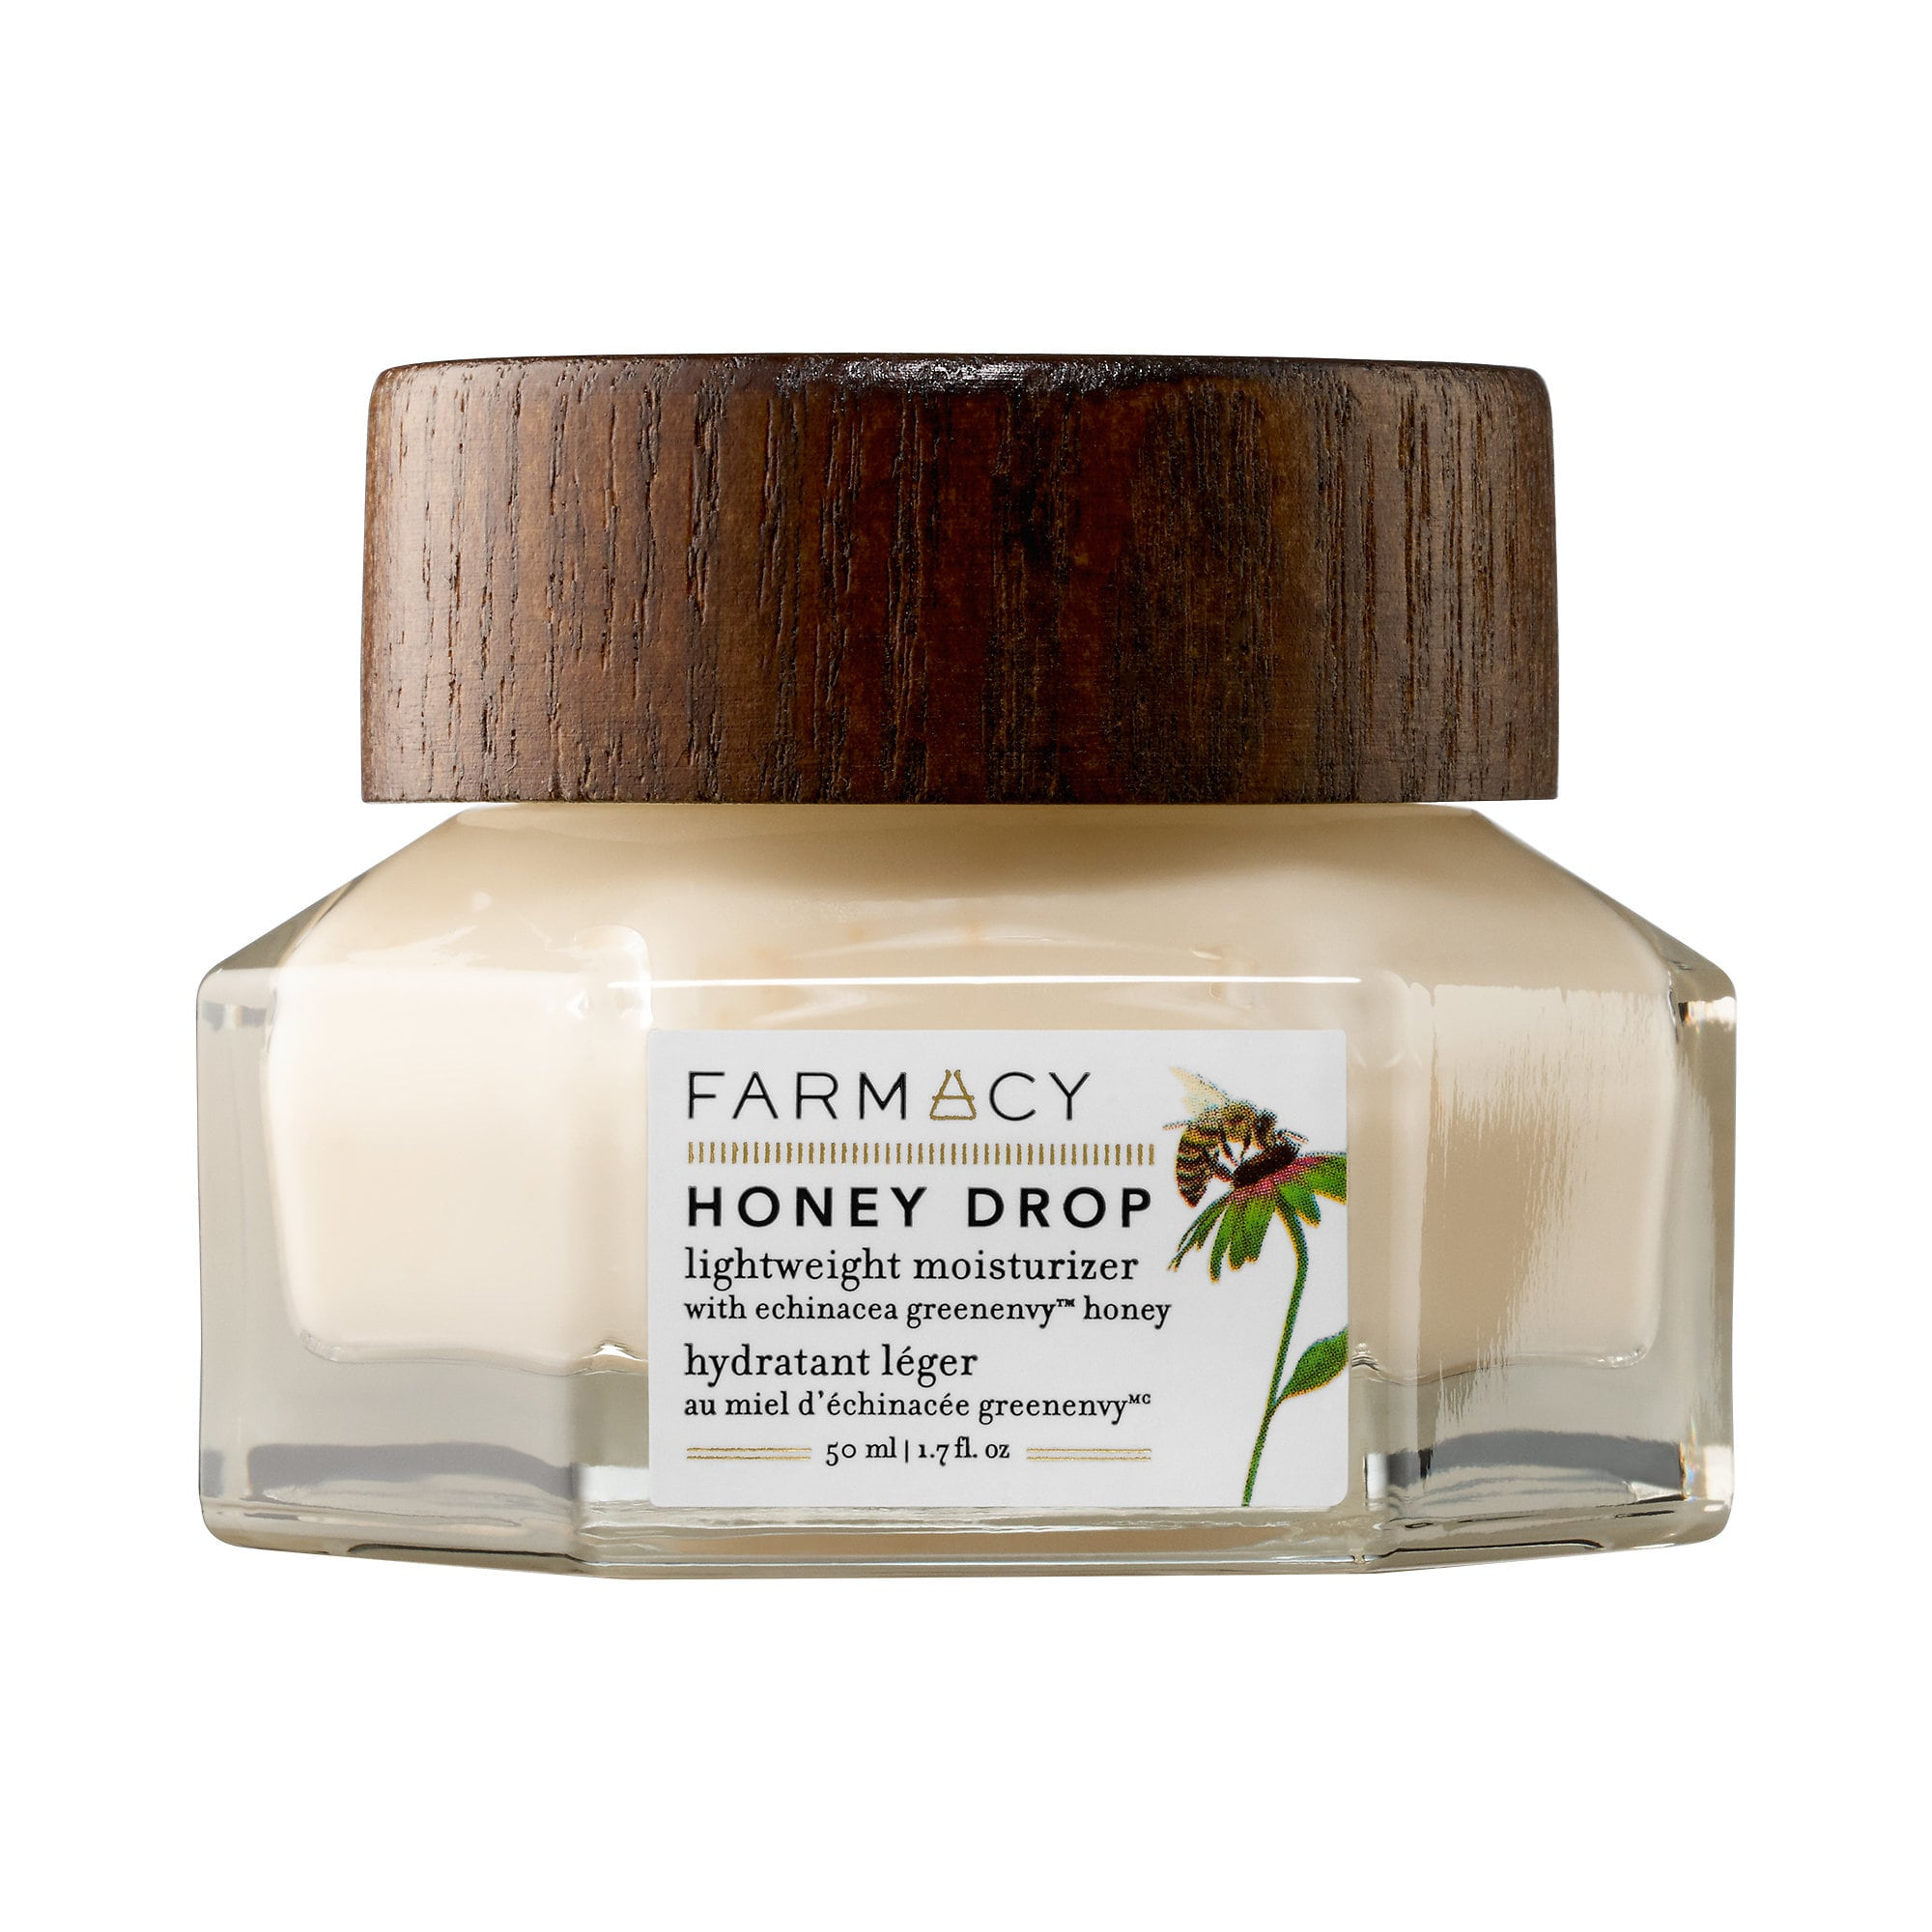 Farmacy Honey Drop Lightweight Moisturiser